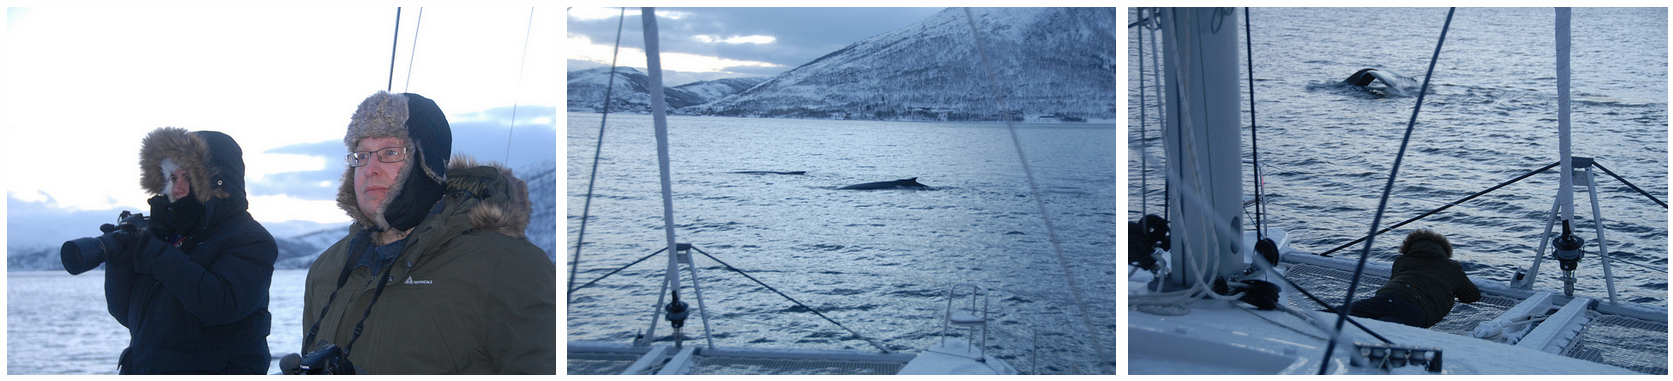 Whale watching | Tromsø January 18